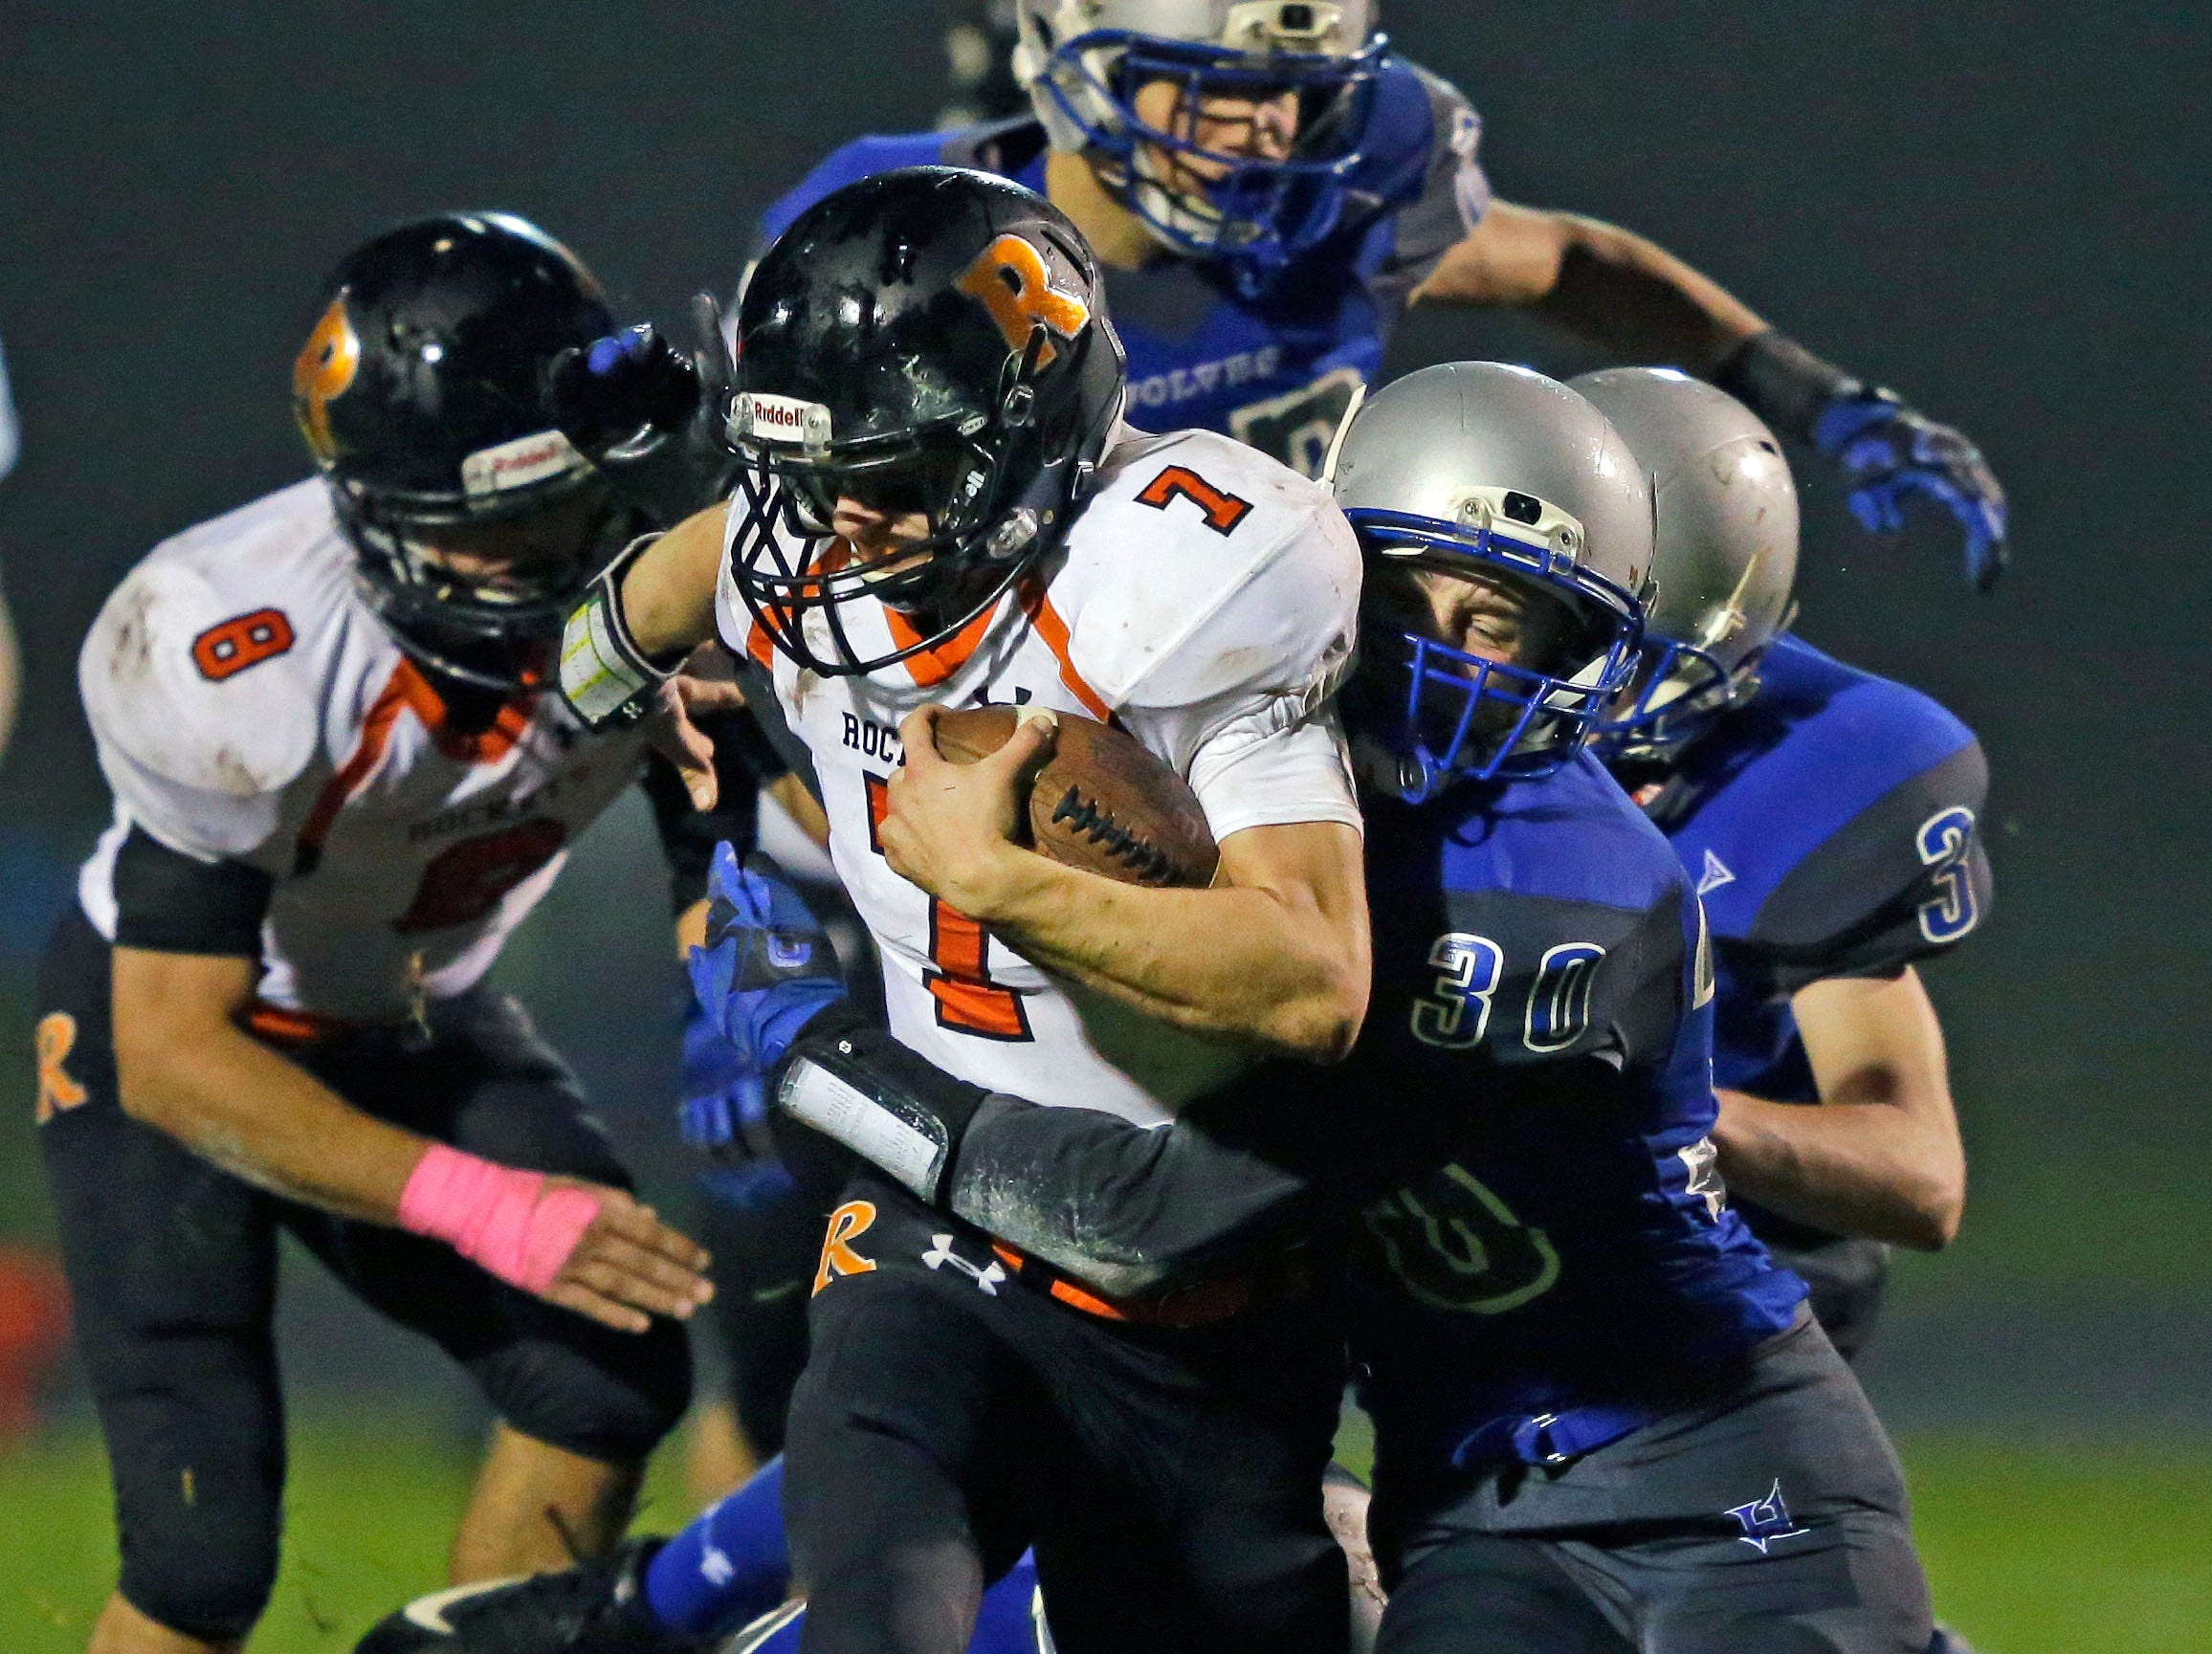 Michael Navis of Cedar Grove-Belgium carries the ball against Hilbert in a game for the Big East Conference title Friday, October 5, 2018, at Hilbert High School in Hilbert, Wis.